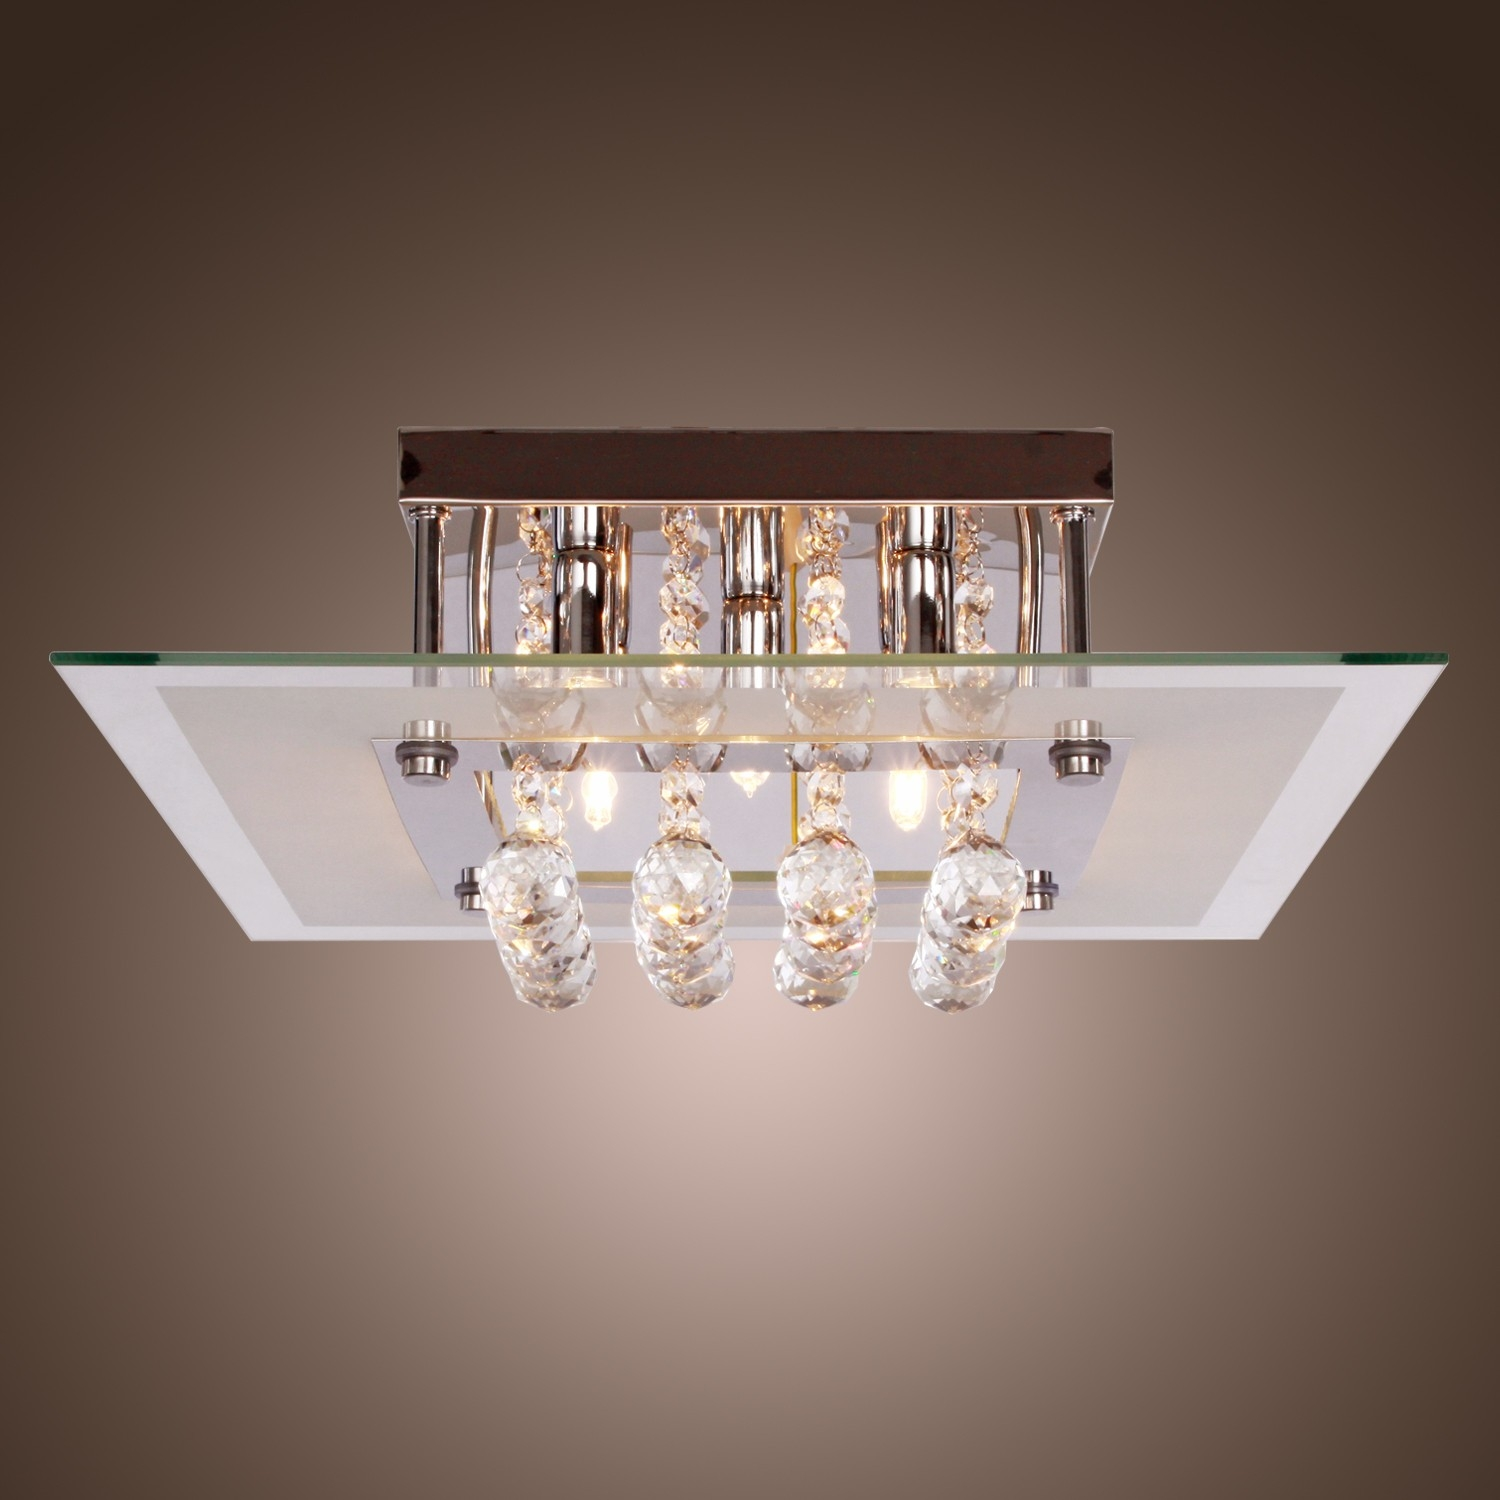 Comtemporary Crystal Drop Flush Mount Lights With 5 Lights In With Regard To Modern Light Chandelier (#4 of 12)